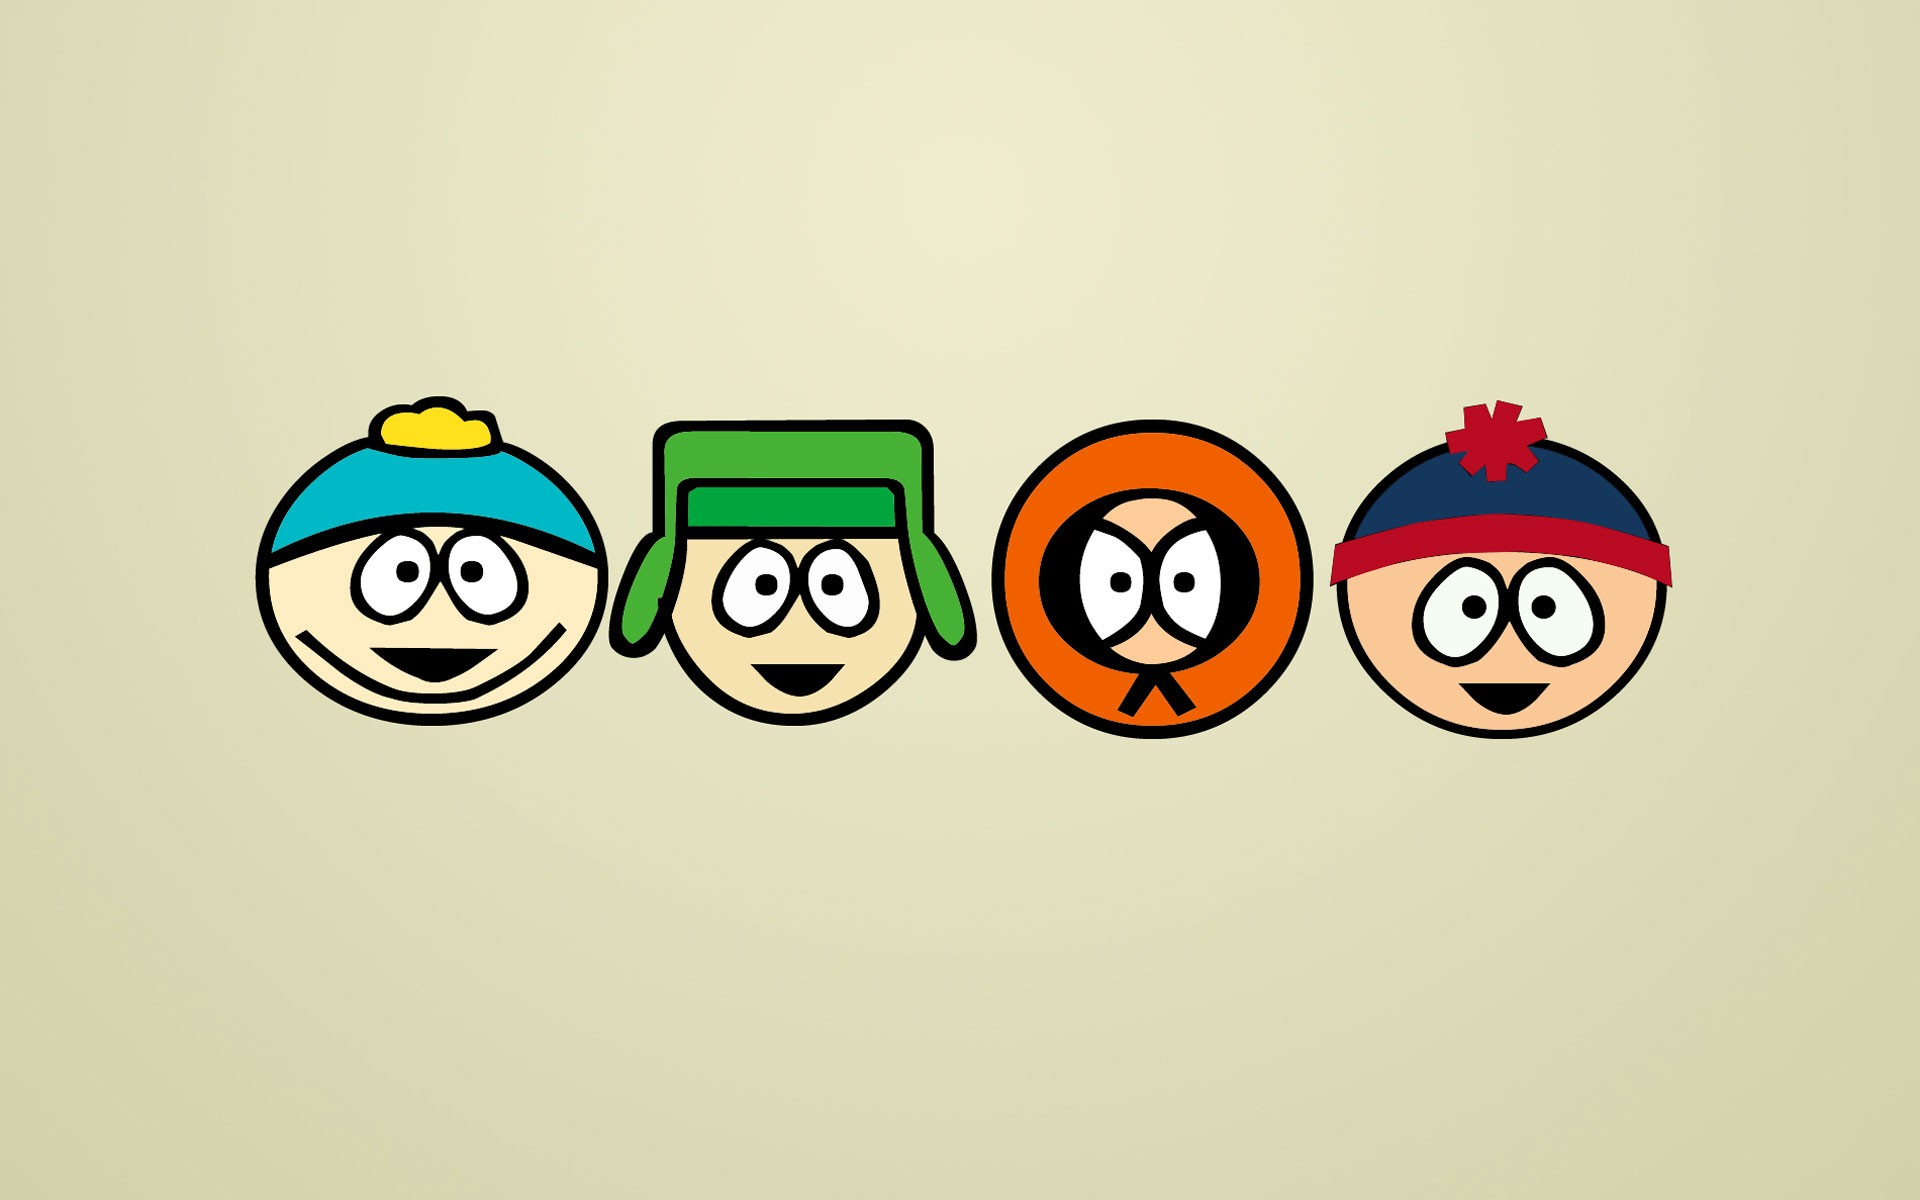 South Park Wallpaper 1 Download Free Full HD Backgrounds For